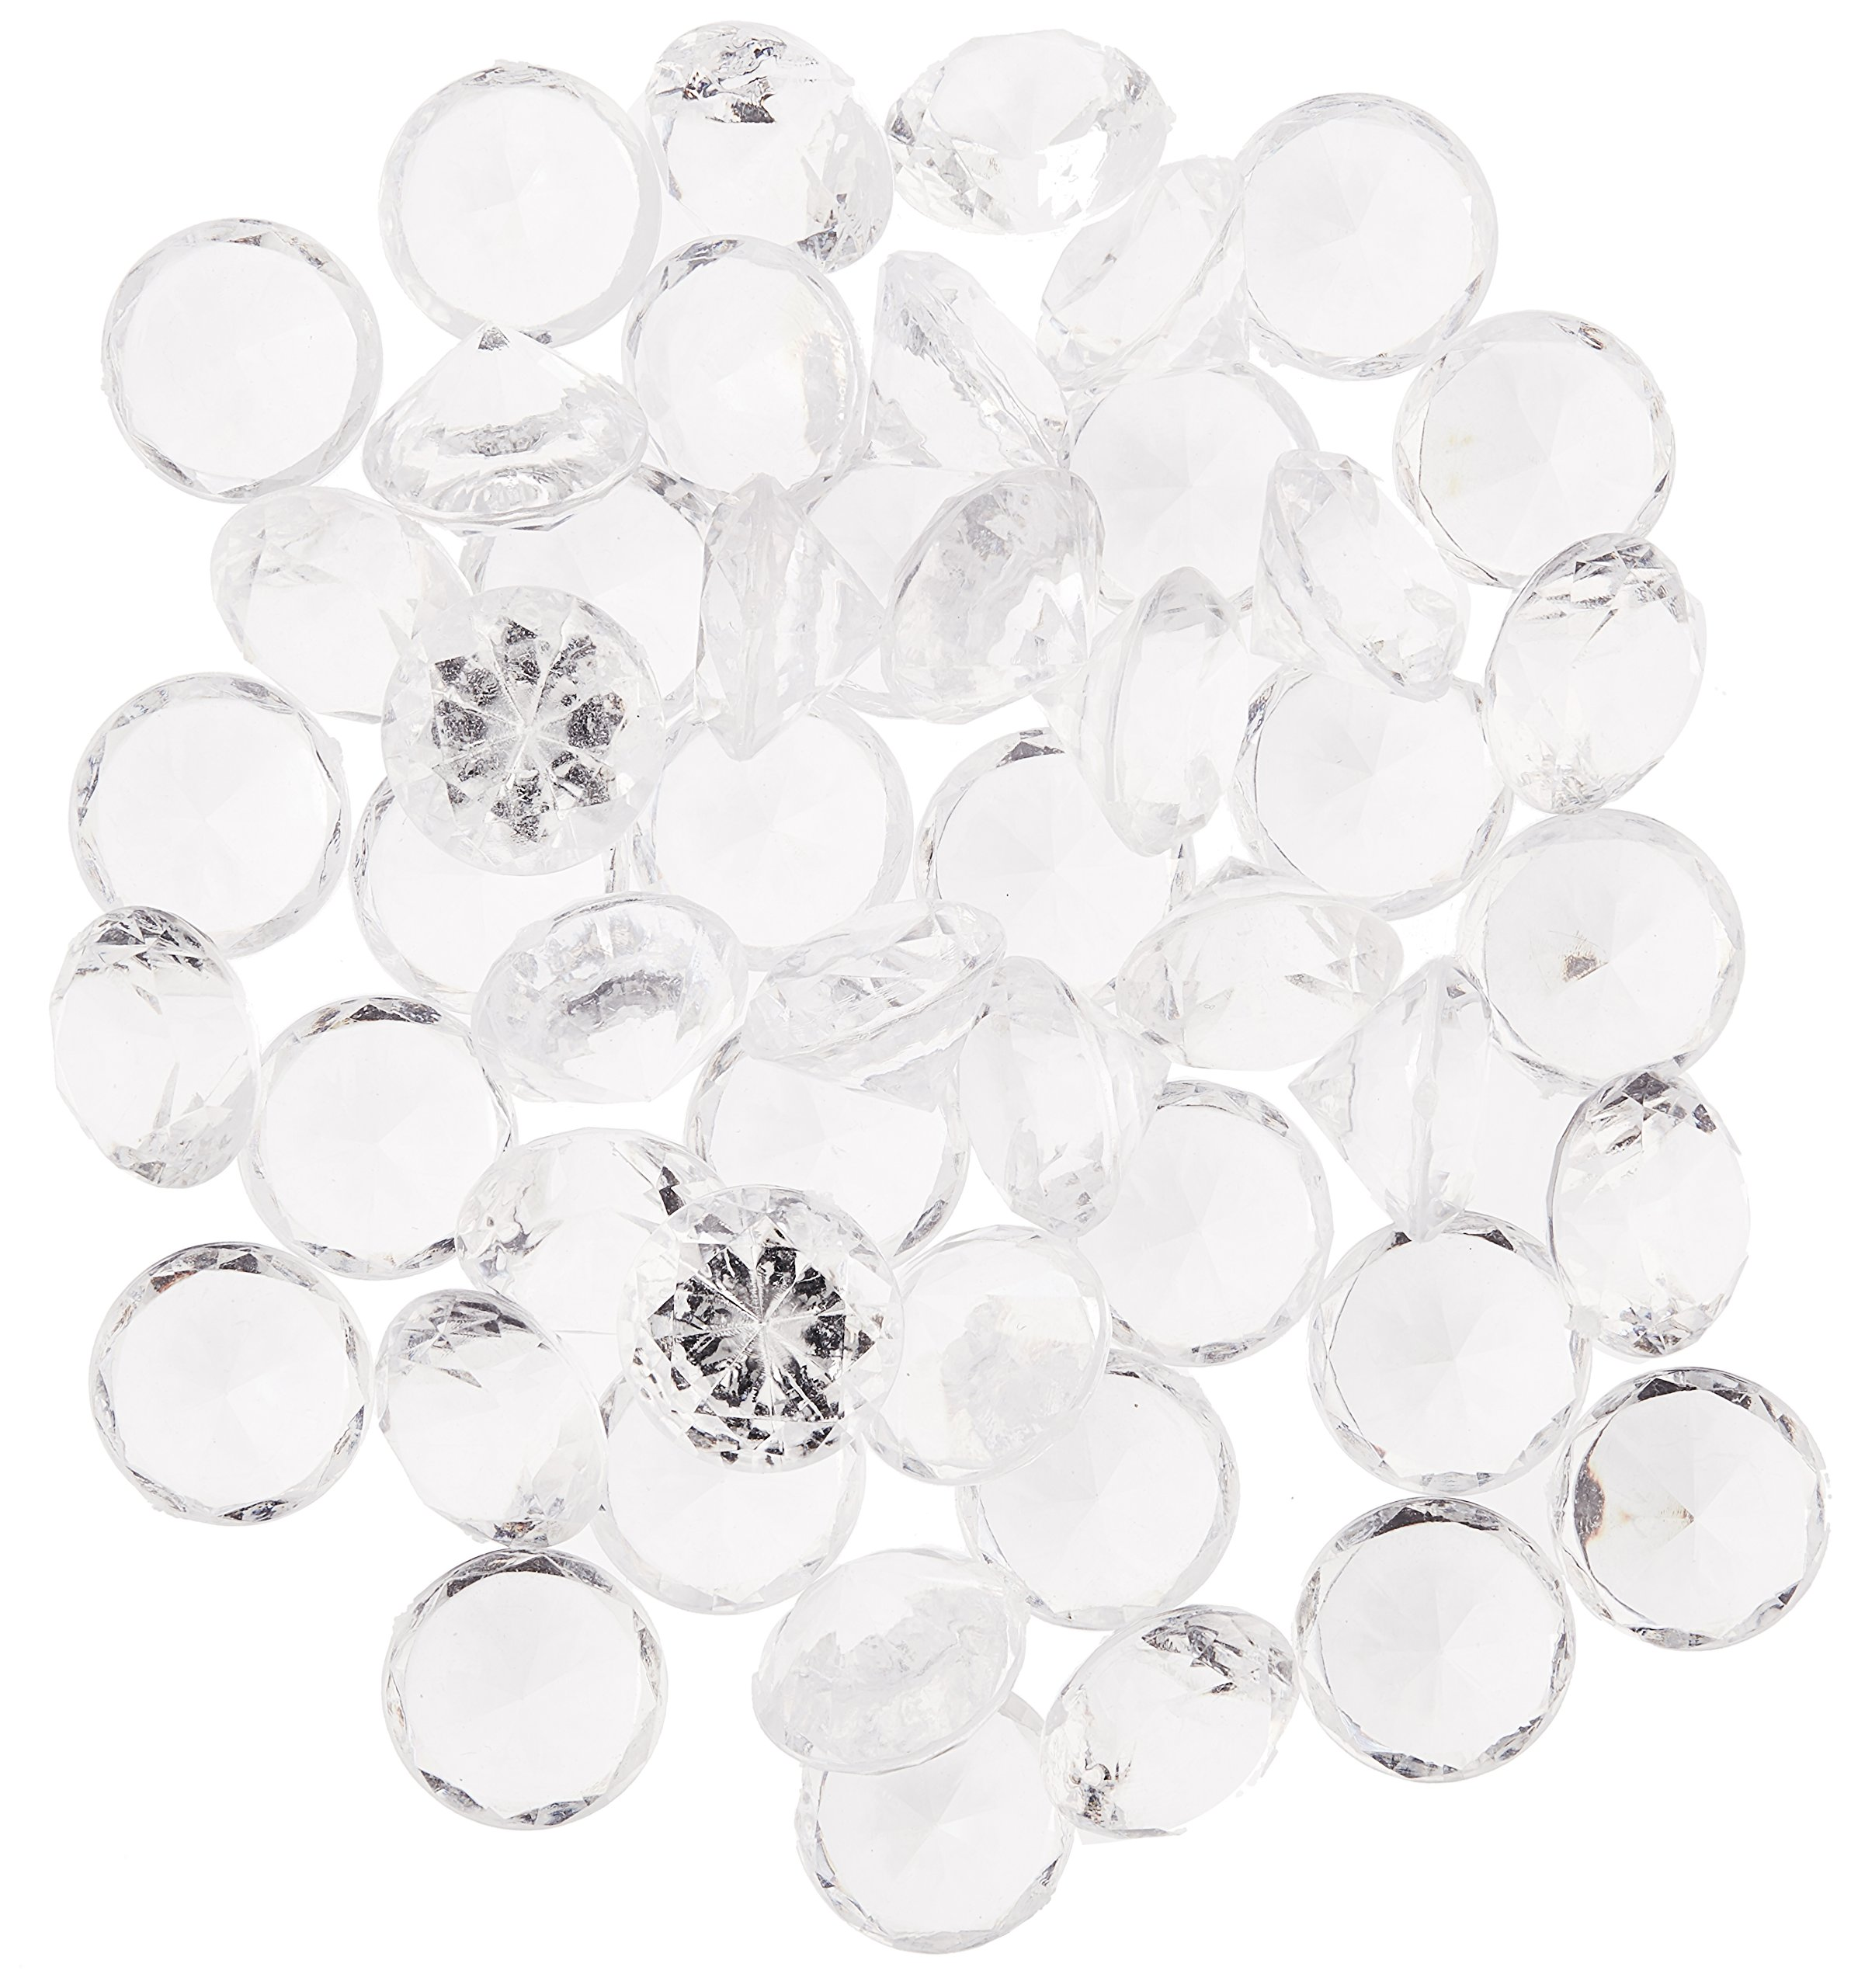 Homeford FPF0750433CL 240 Piece Acrylic Diamond Gemstone Table Scatter, 3/4'', Clear